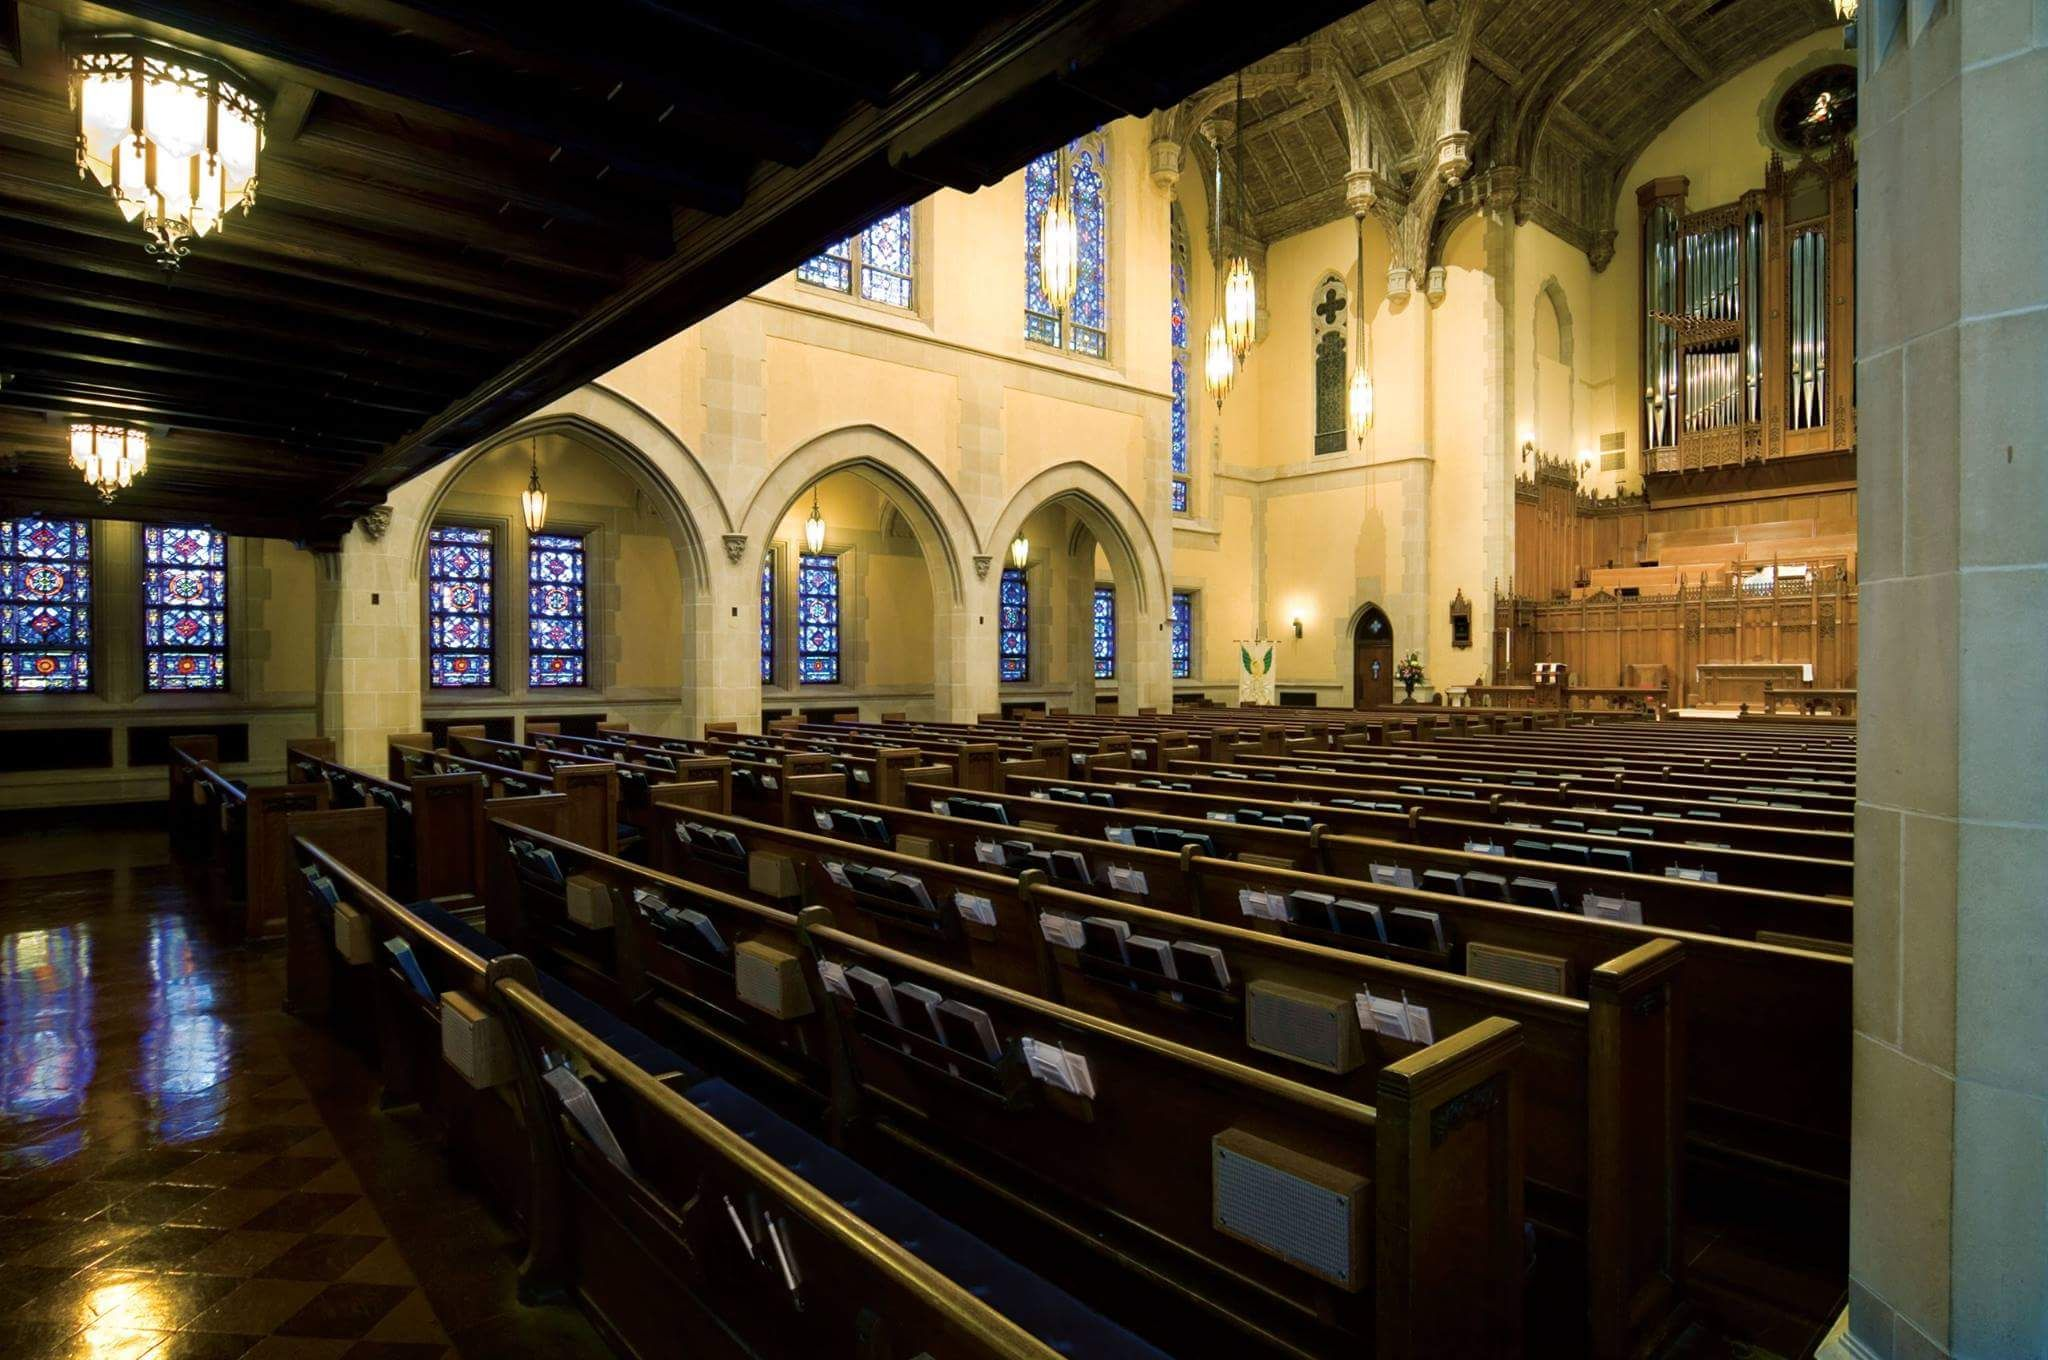 St Paul United Methodist Church, Houston, TX | Churches | Religious